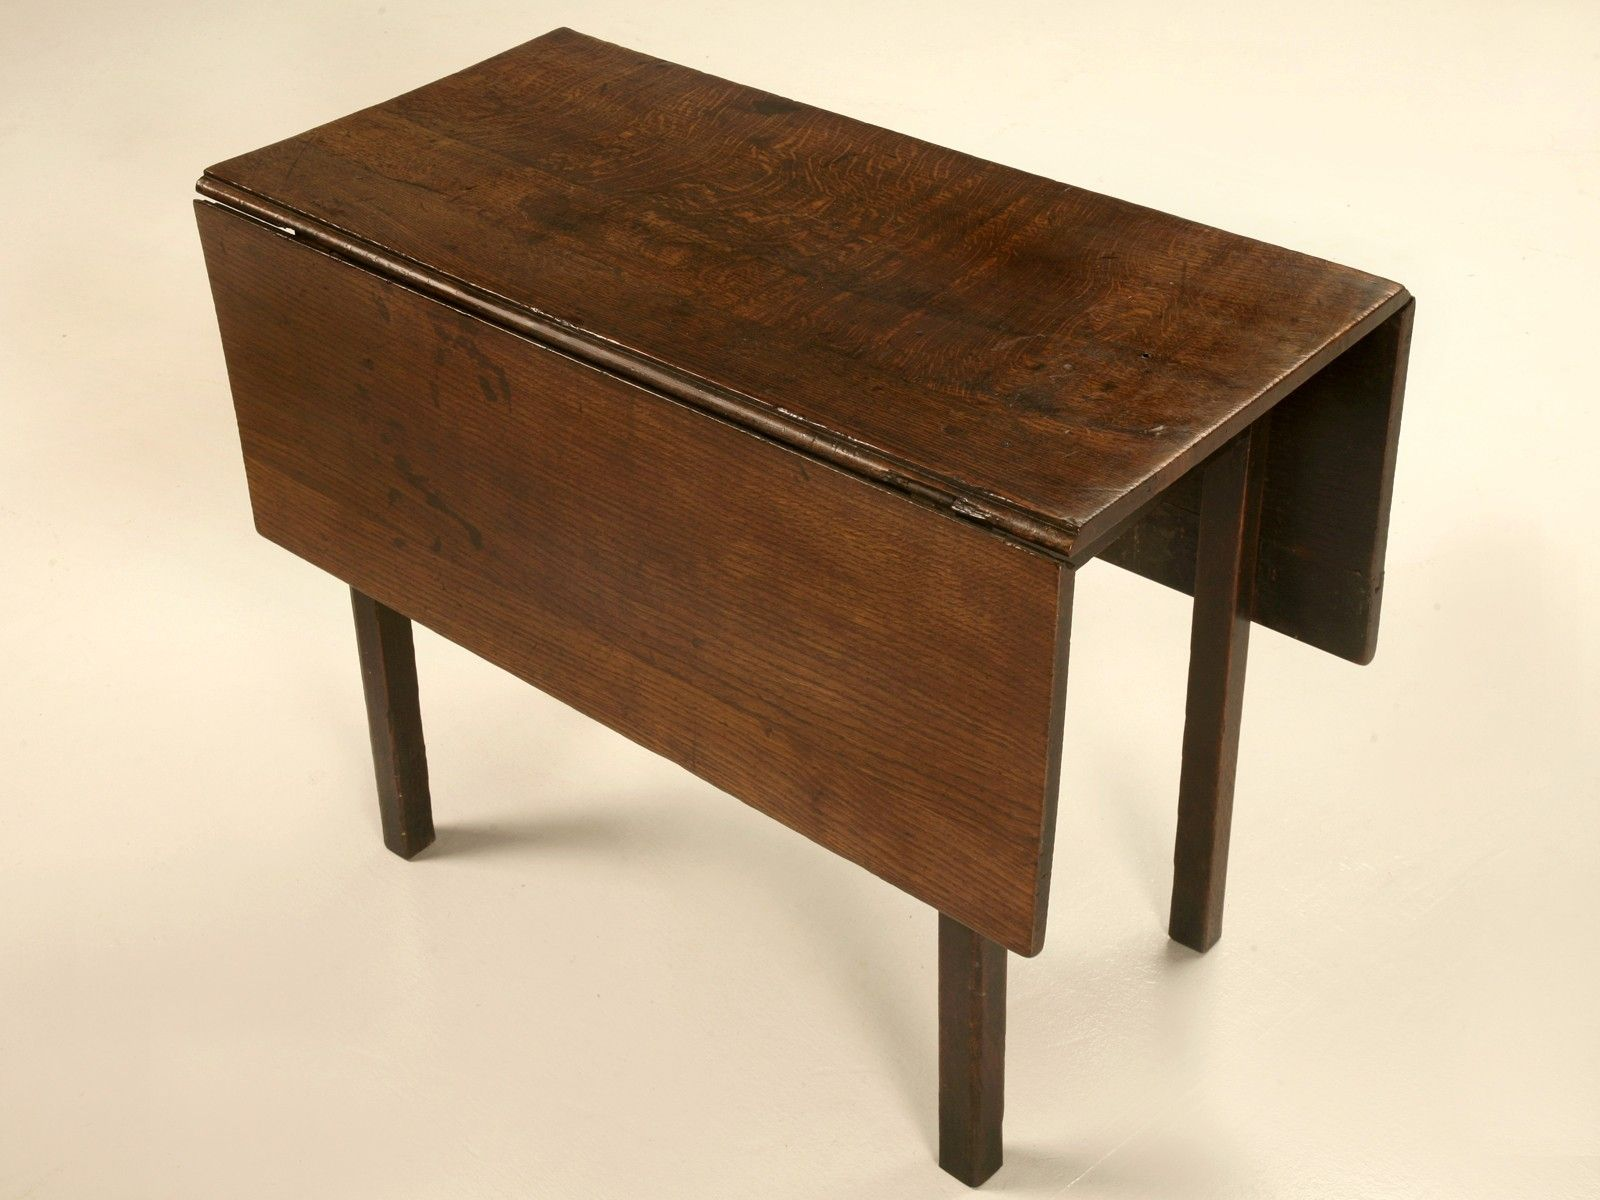 gate leg drop leaf table google search drop leaf gate leg